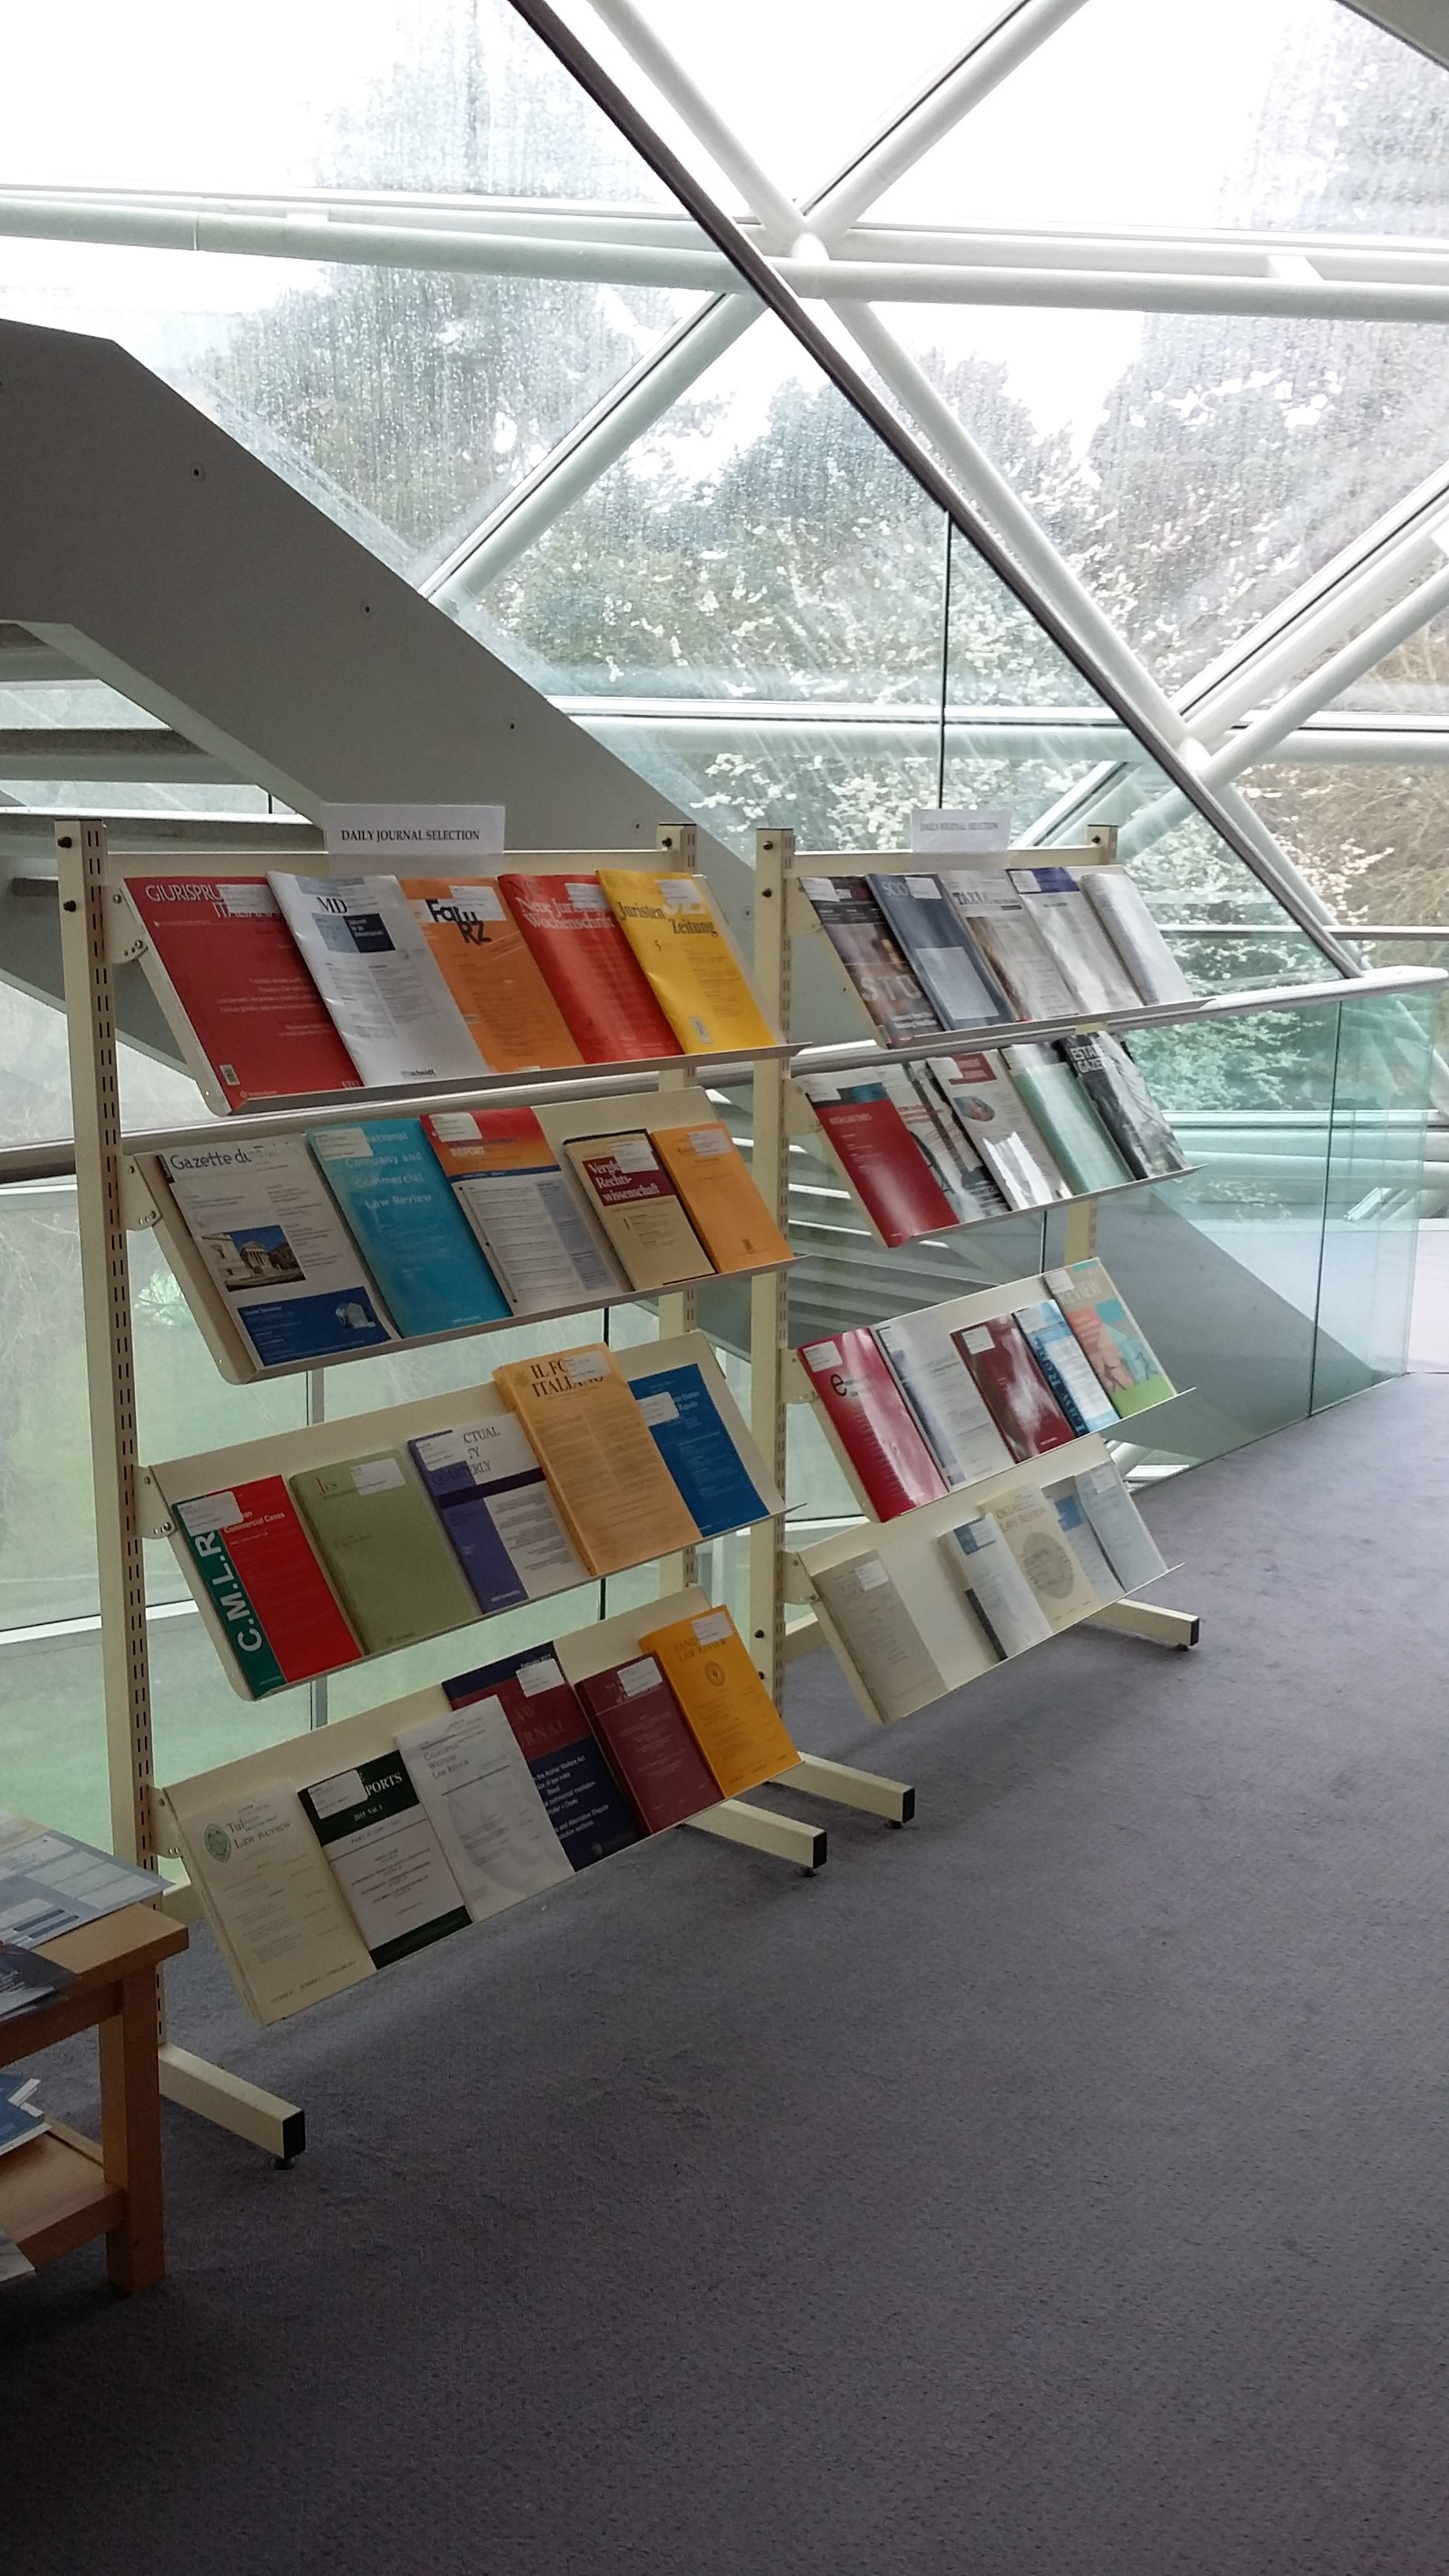 Photo of the journals display stand in the Squire Law Library where a selection of recent arrivals are displayed.